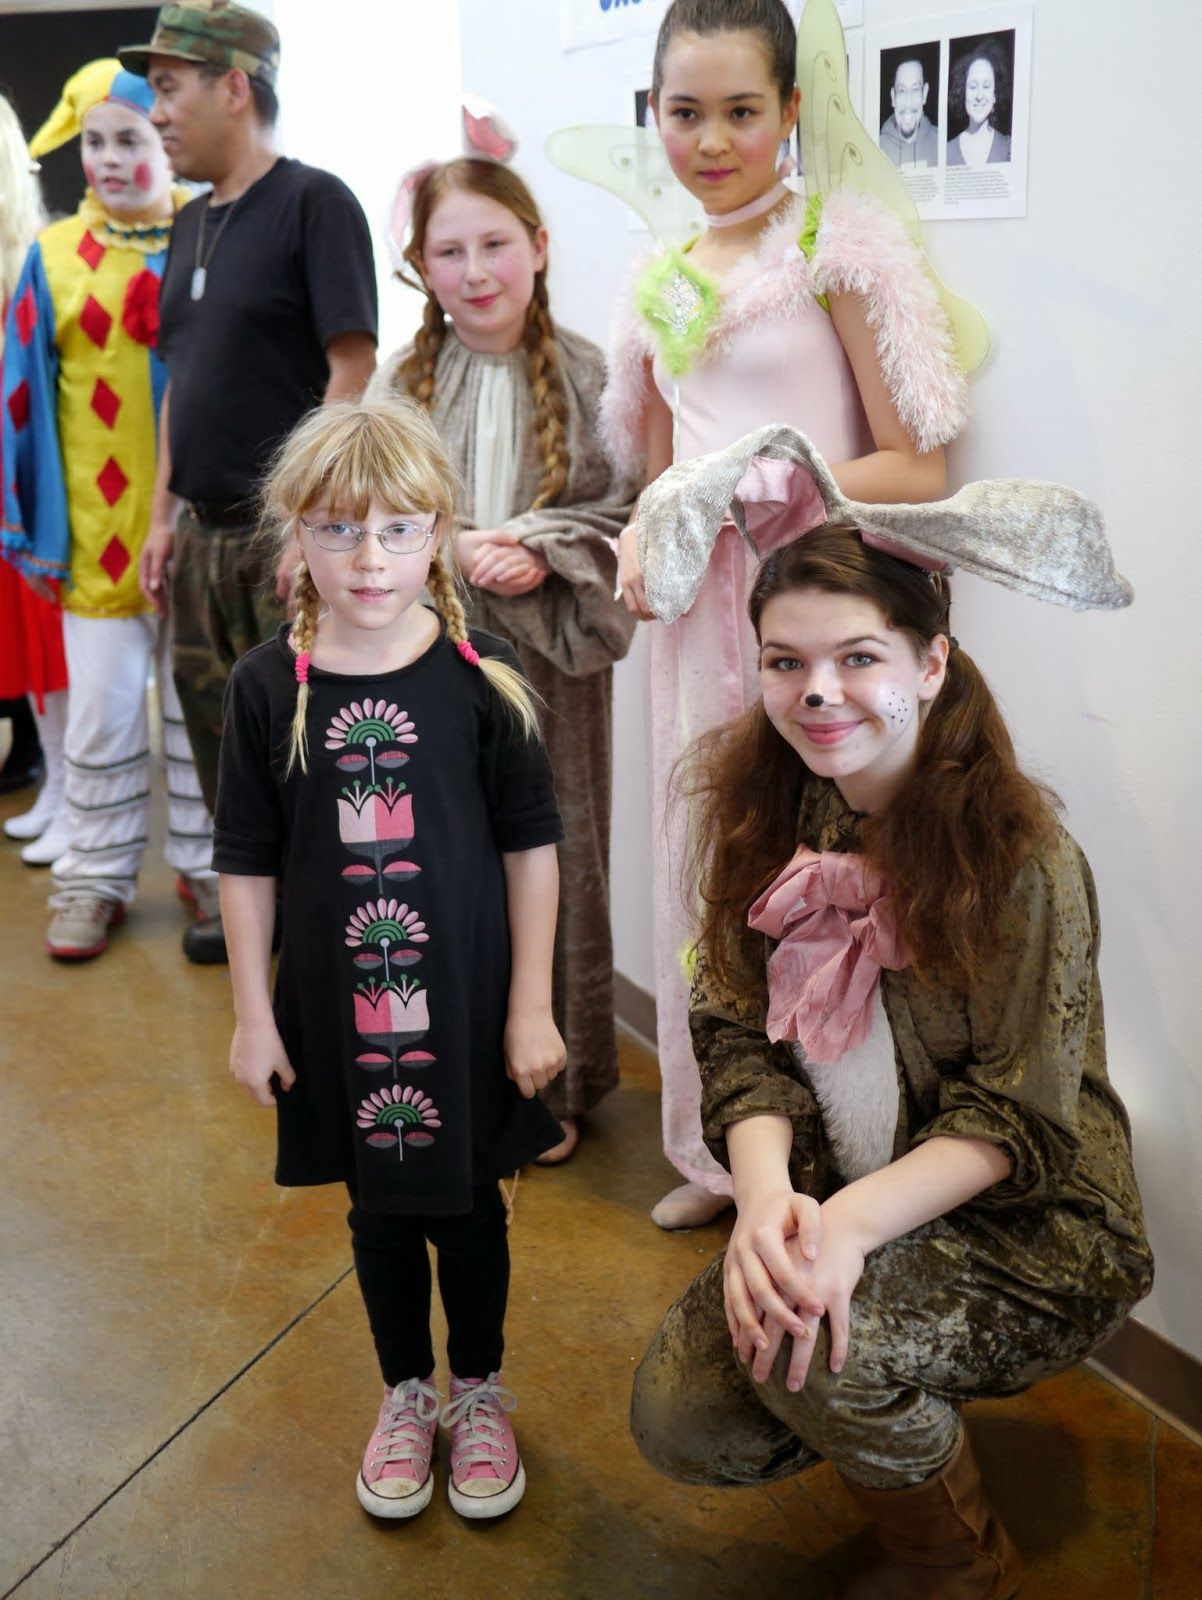 """Little Hiccups: Meeting the characters from """"Whiskers!"""" at Children's Creativity Museum"""